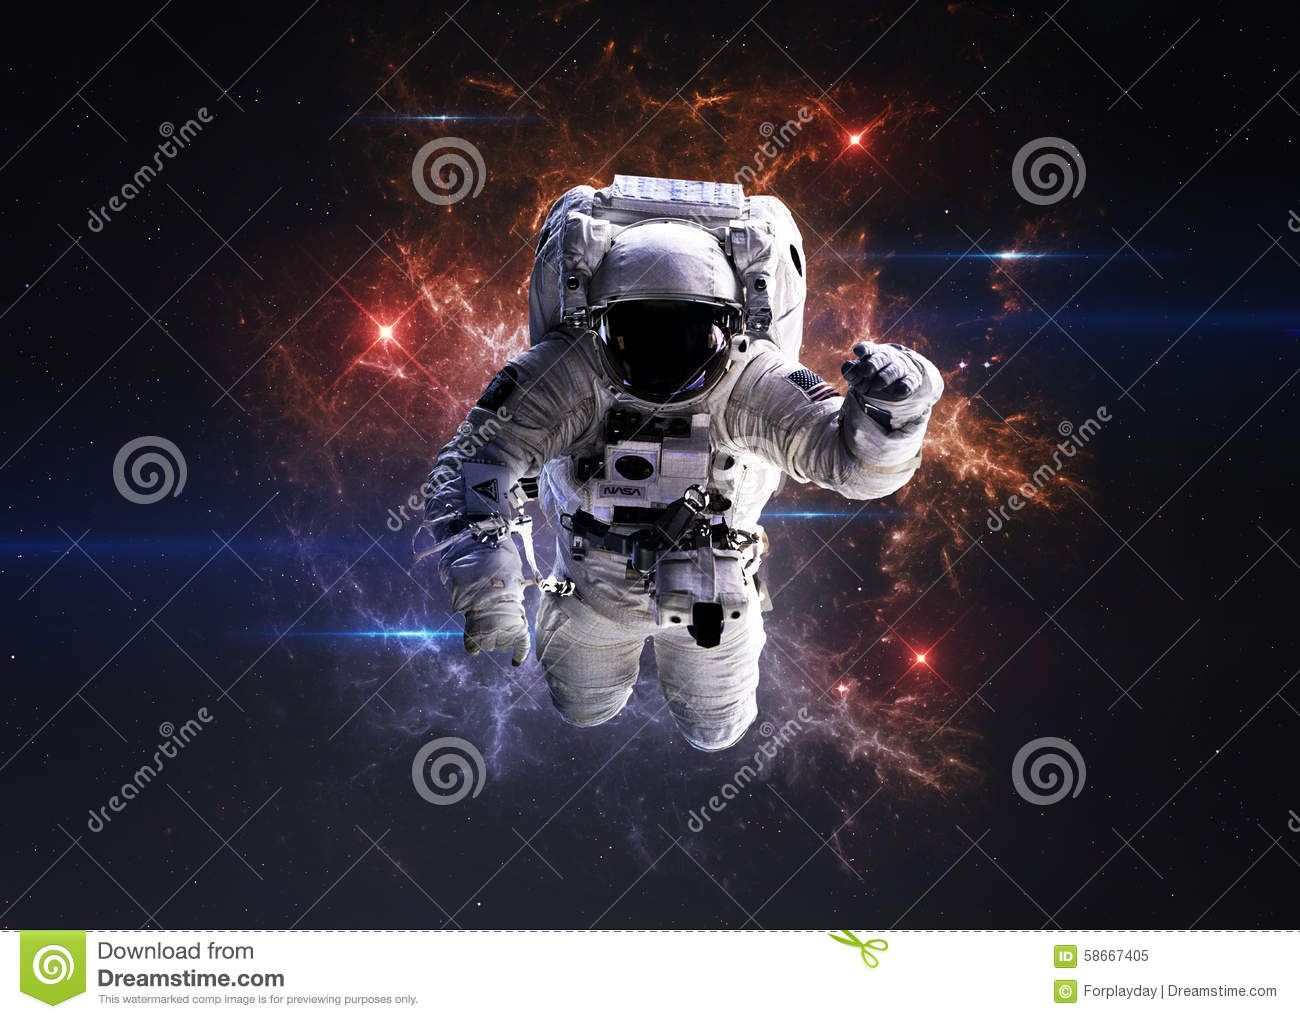 Astronaut in outer space stock photo image 58667405 for Outer space elements